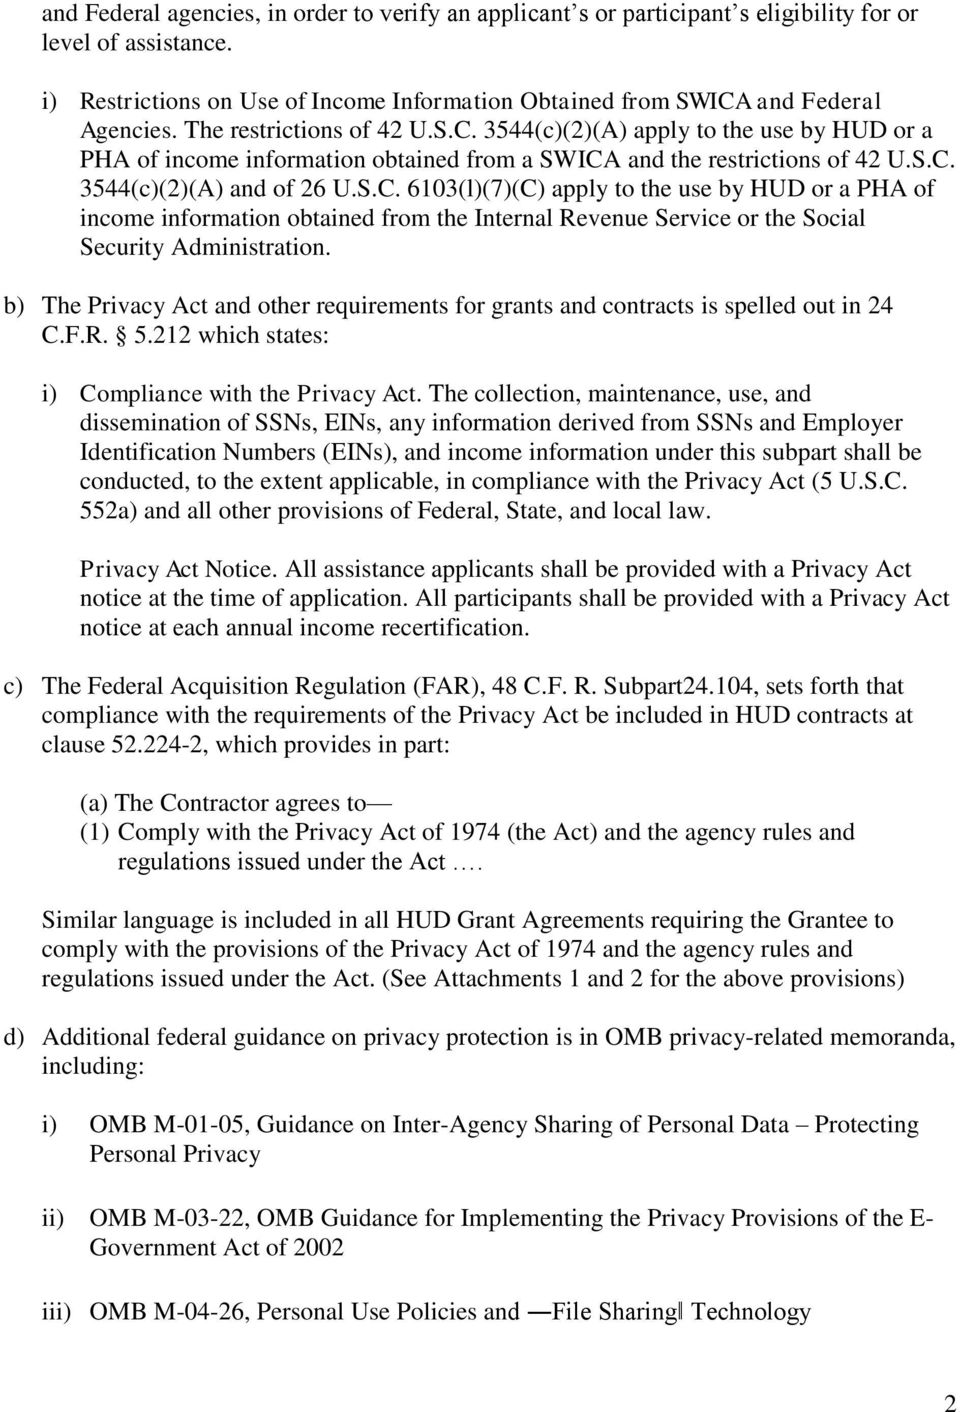 b) The Privacy Act and other requirements for grants and contracts is spelled out in 24 C.F.R. 5.212 which states: i) Compliance with the Privacy Act.